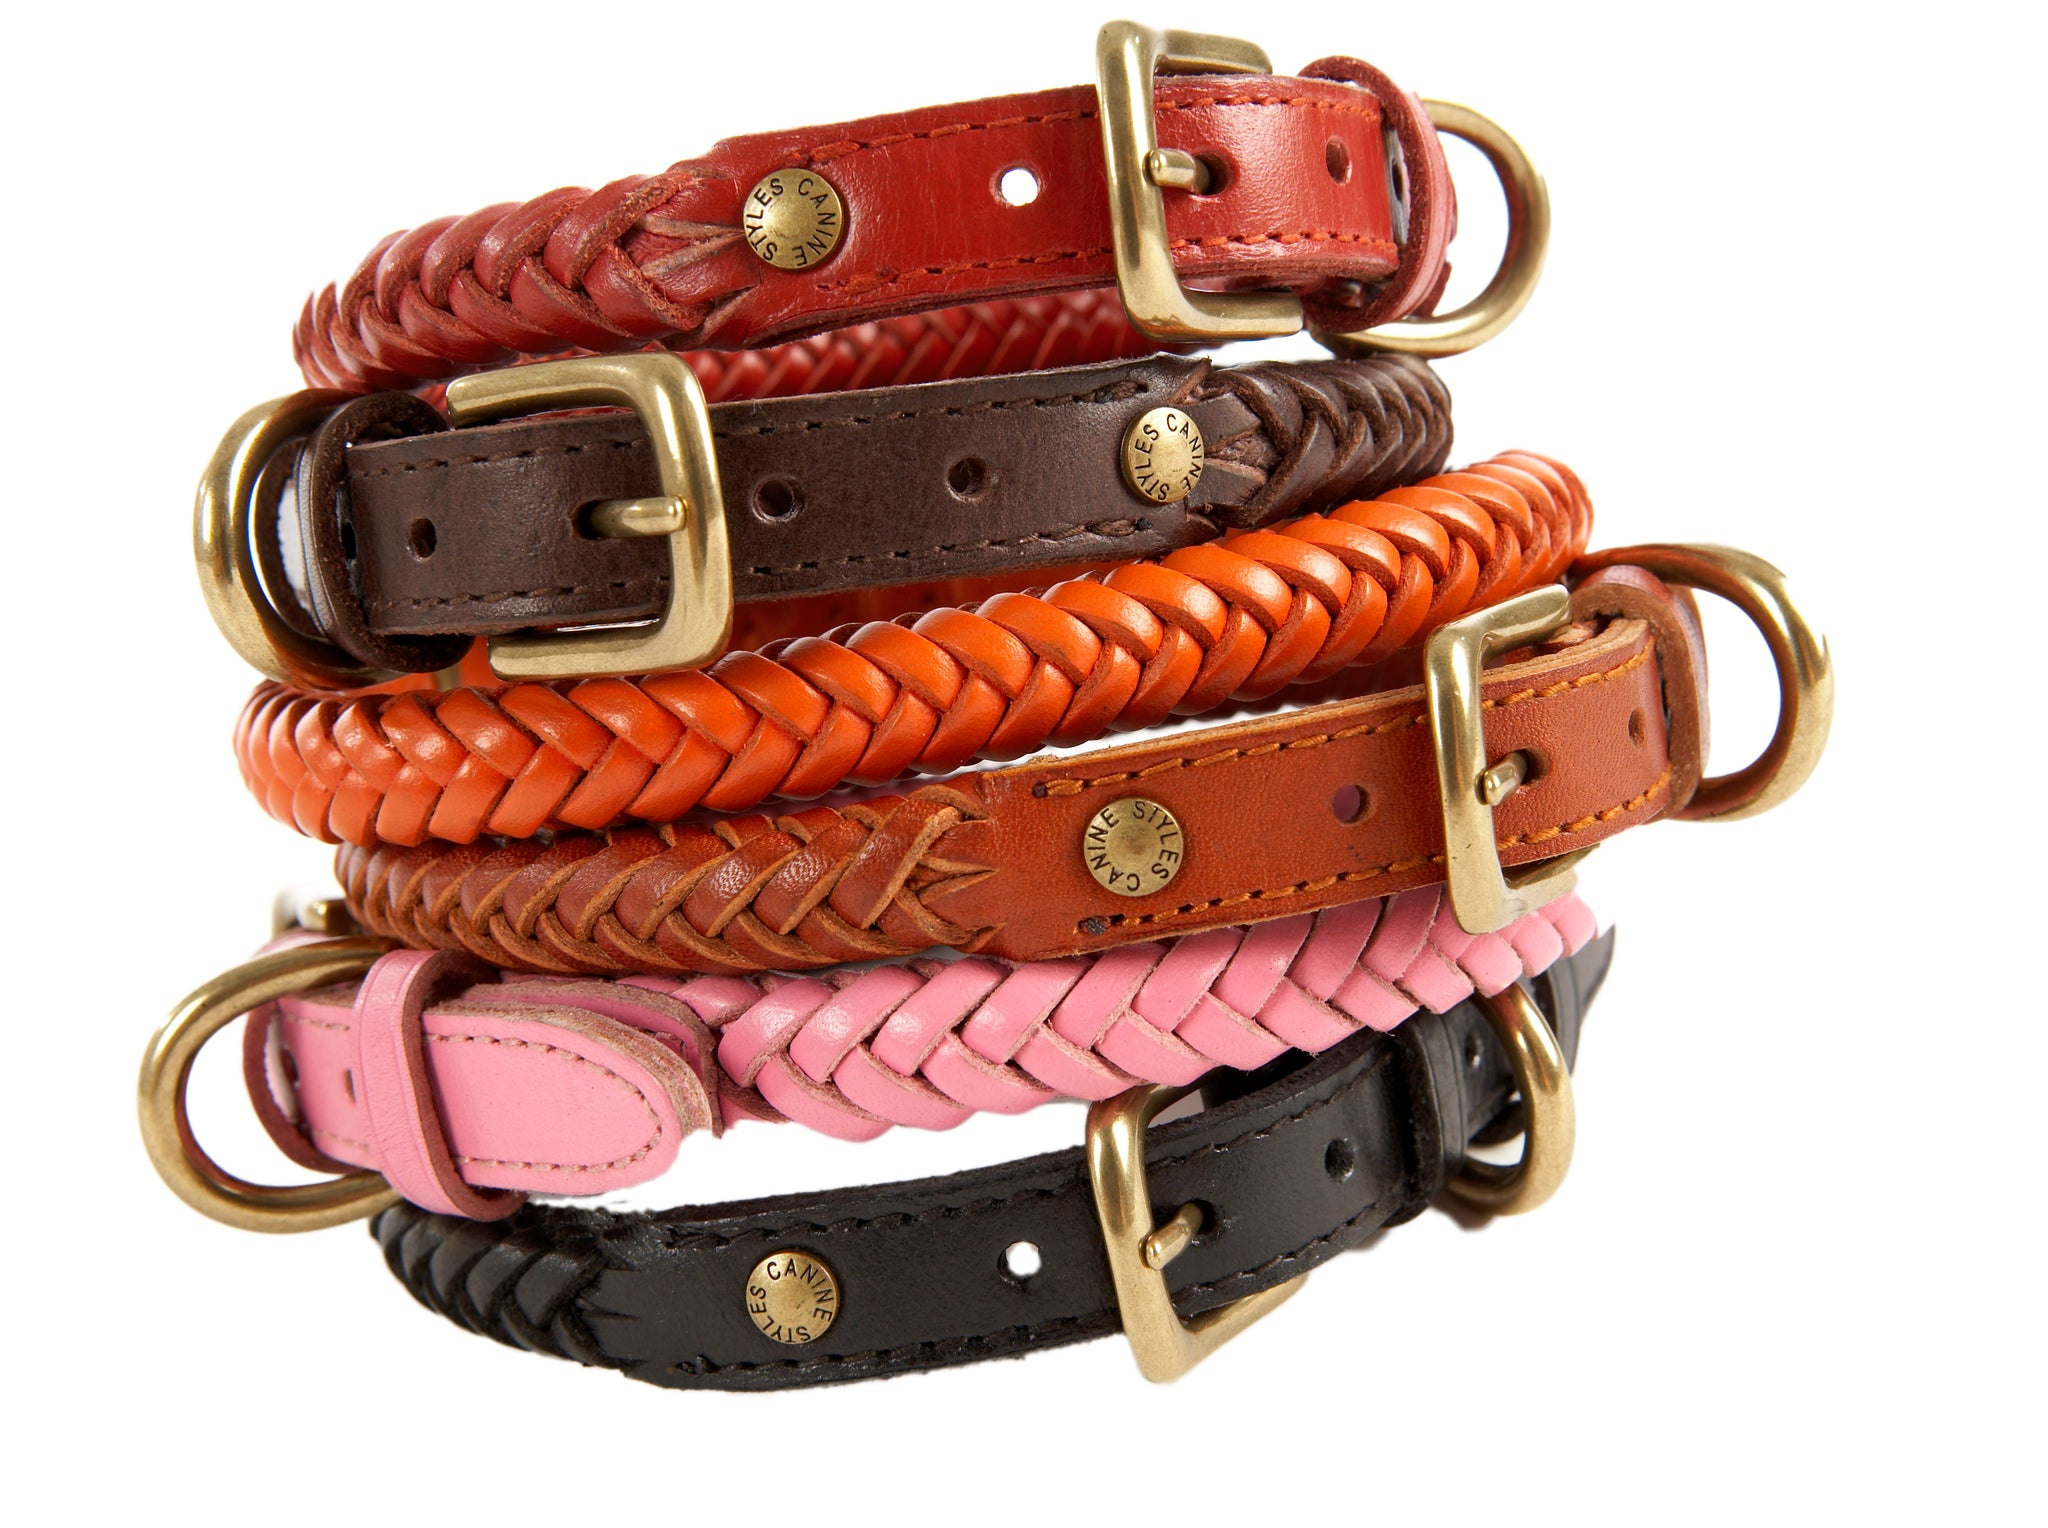 CANINE_STYLES_CLASSIC_FLAT_LEATHER_DOG_COLLARS_RED_GREEN_BLACK_ORANGE_BROWN_METAL_1_2048x2048?v\=1507926931 dog collars harness black dog leashes product \u2022 wiring diagram  at bayanpartner.co